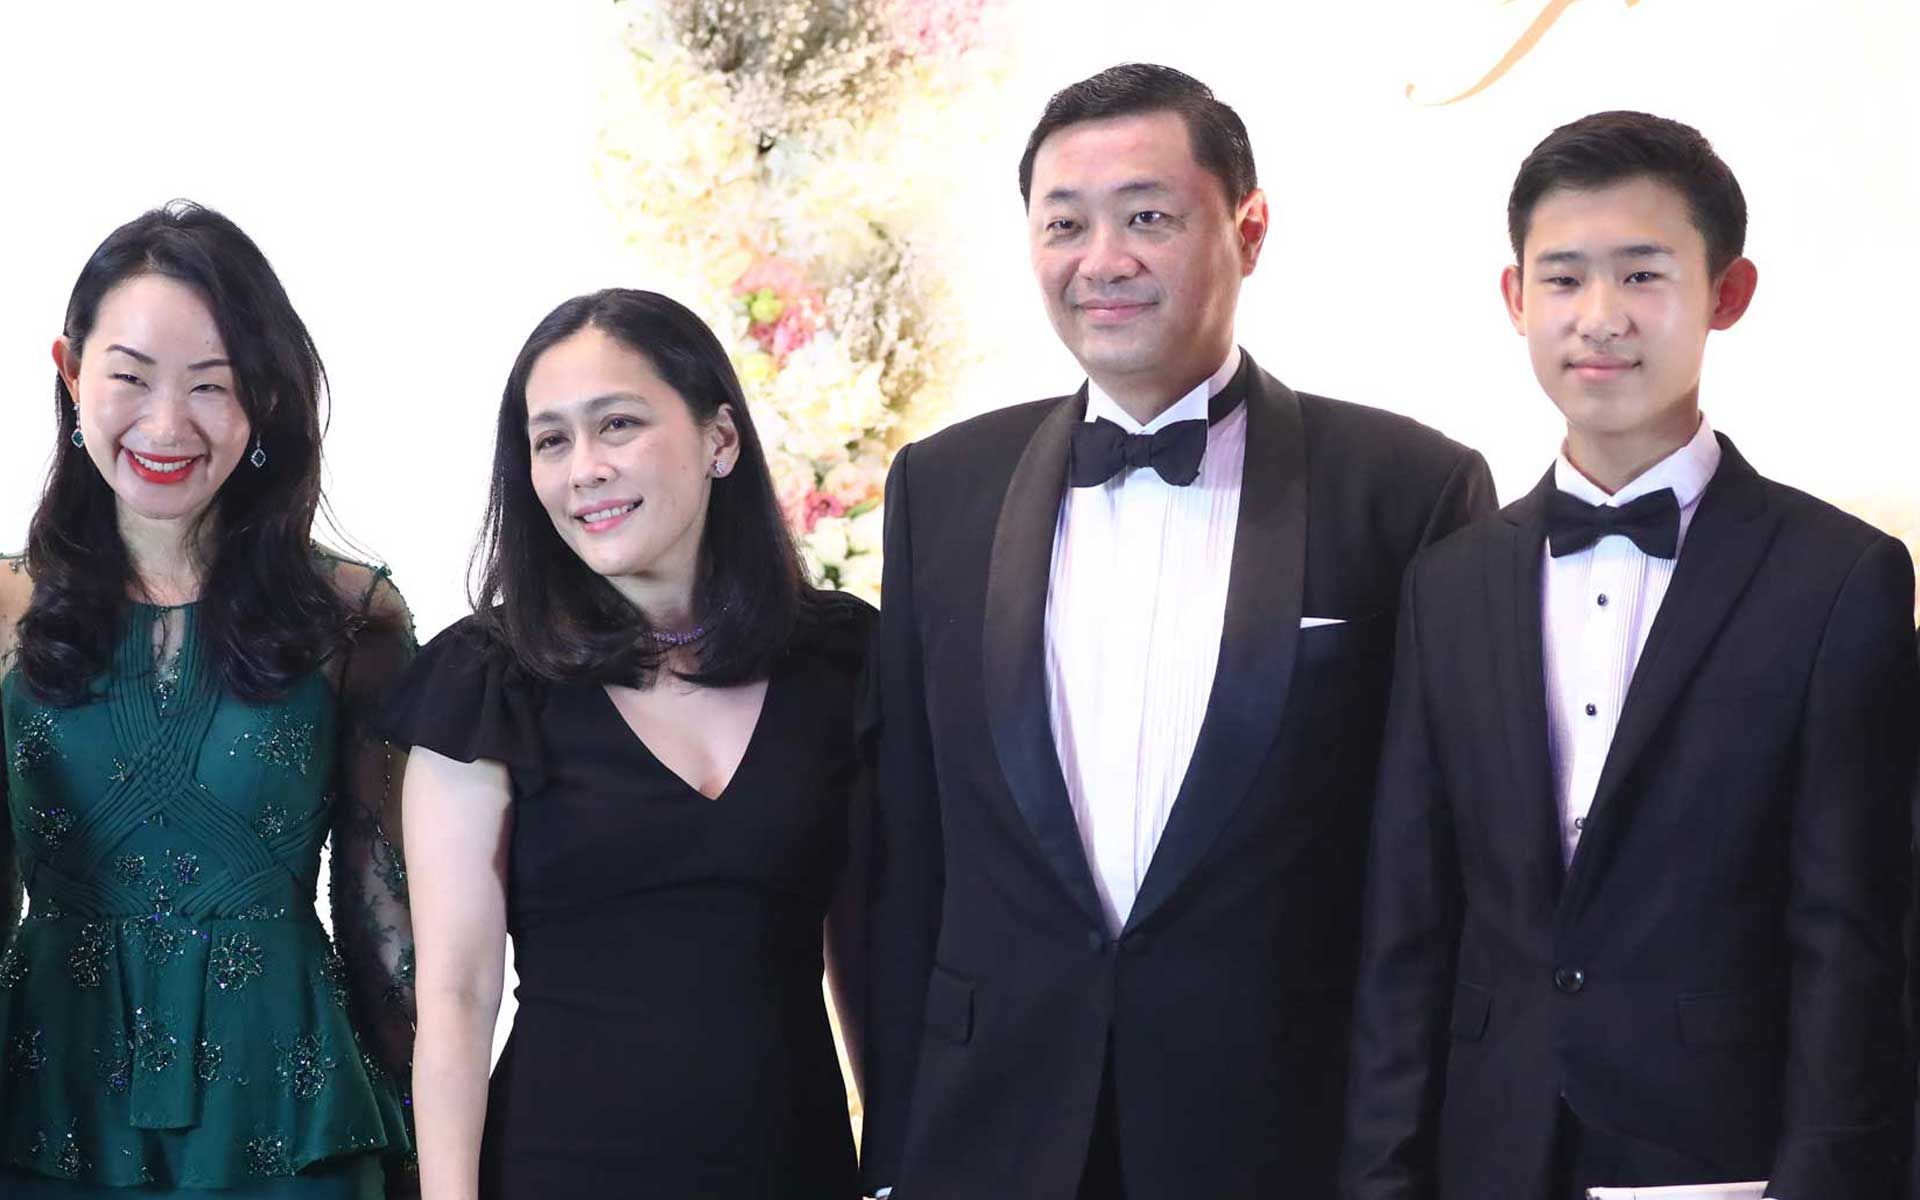 Nerine Tan, Datin Sri Leow Hui Hsien, Dato' Sri Robin Tan and Tristan Tan